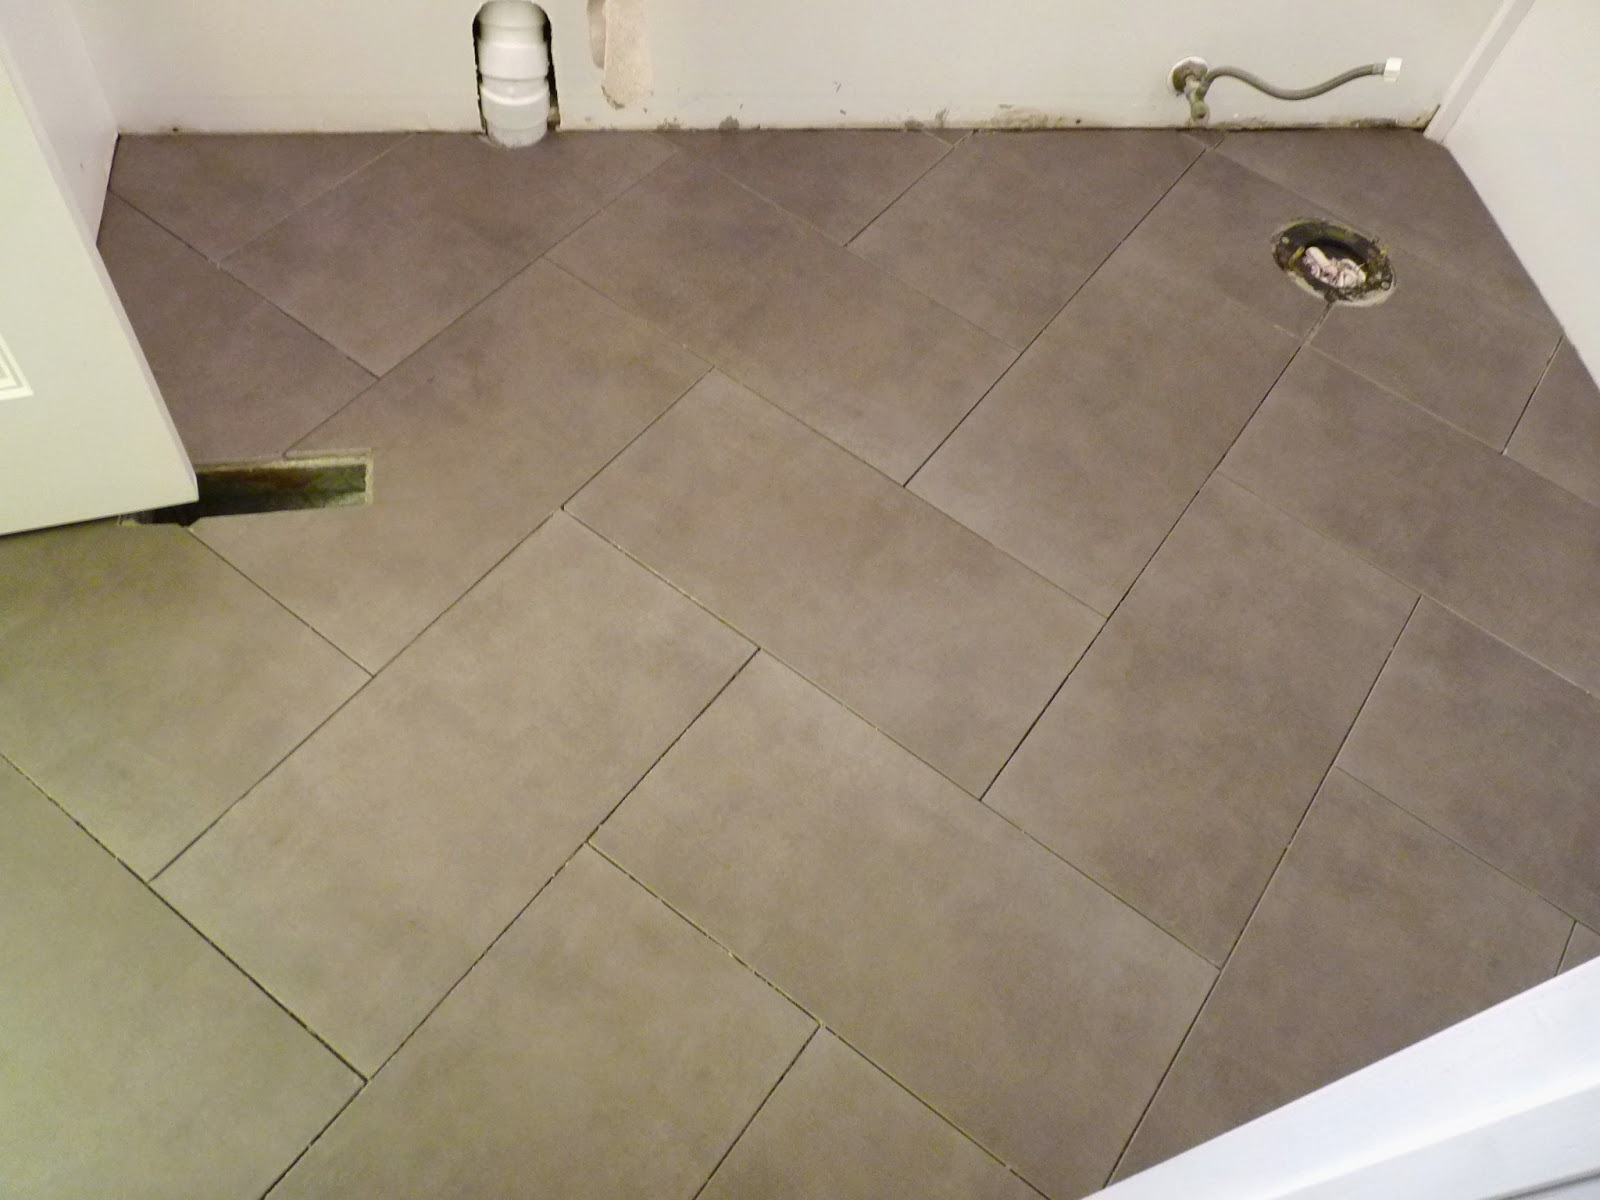 D i y d e s i g n how to install a herringbone tile floor dailygadgetfo Image collections